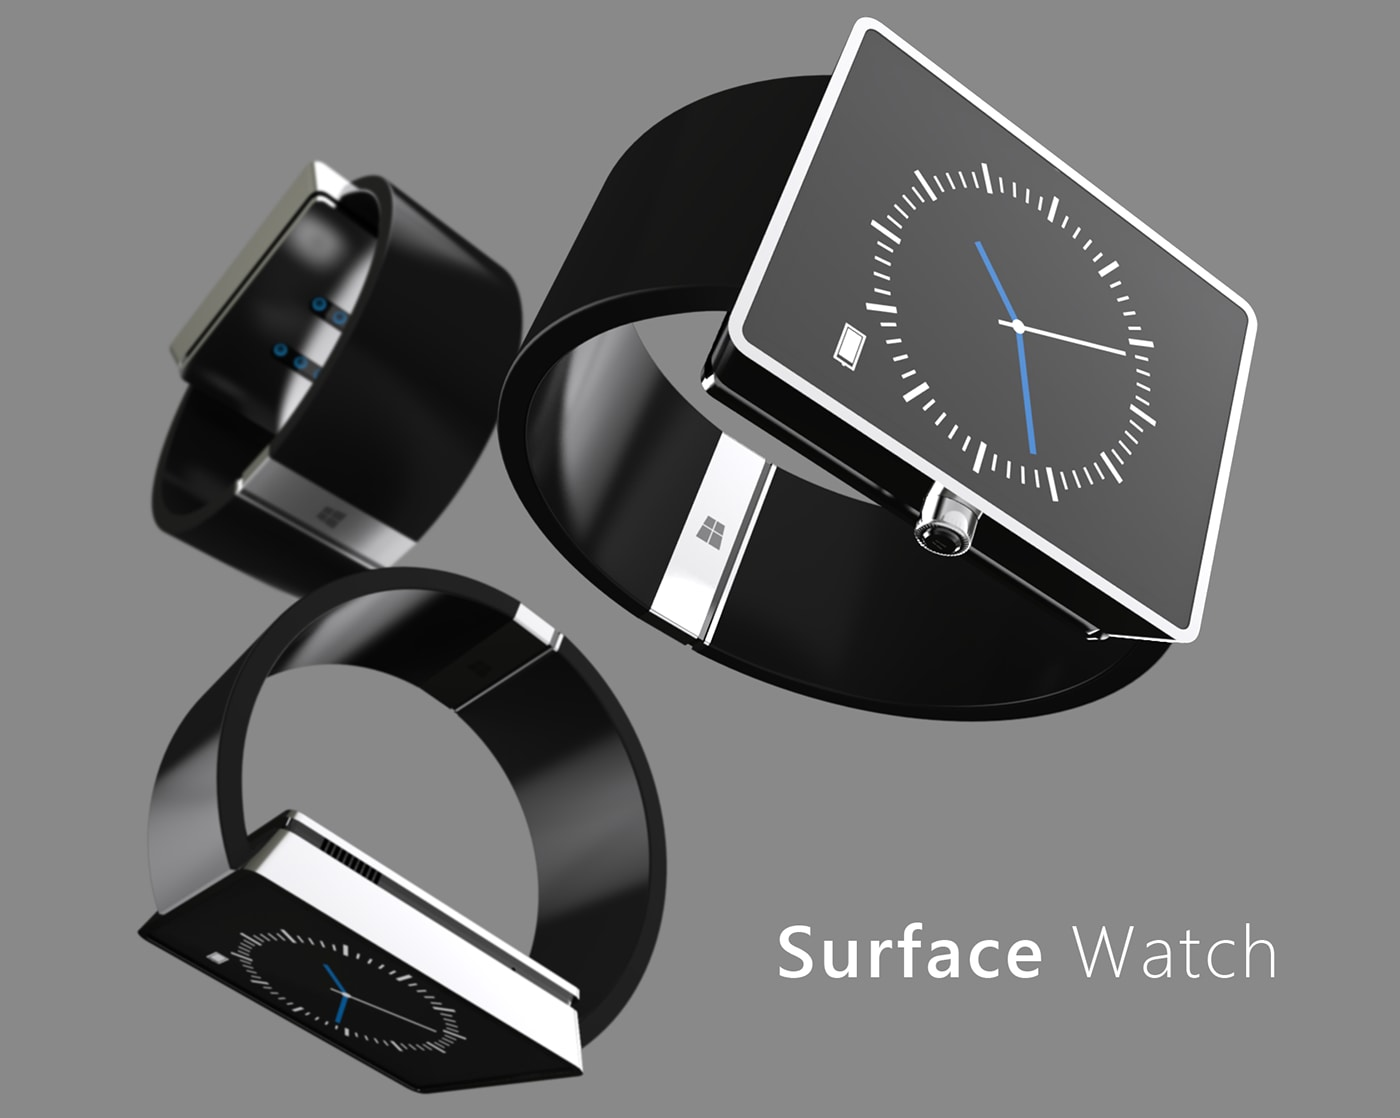 surfacewatch1